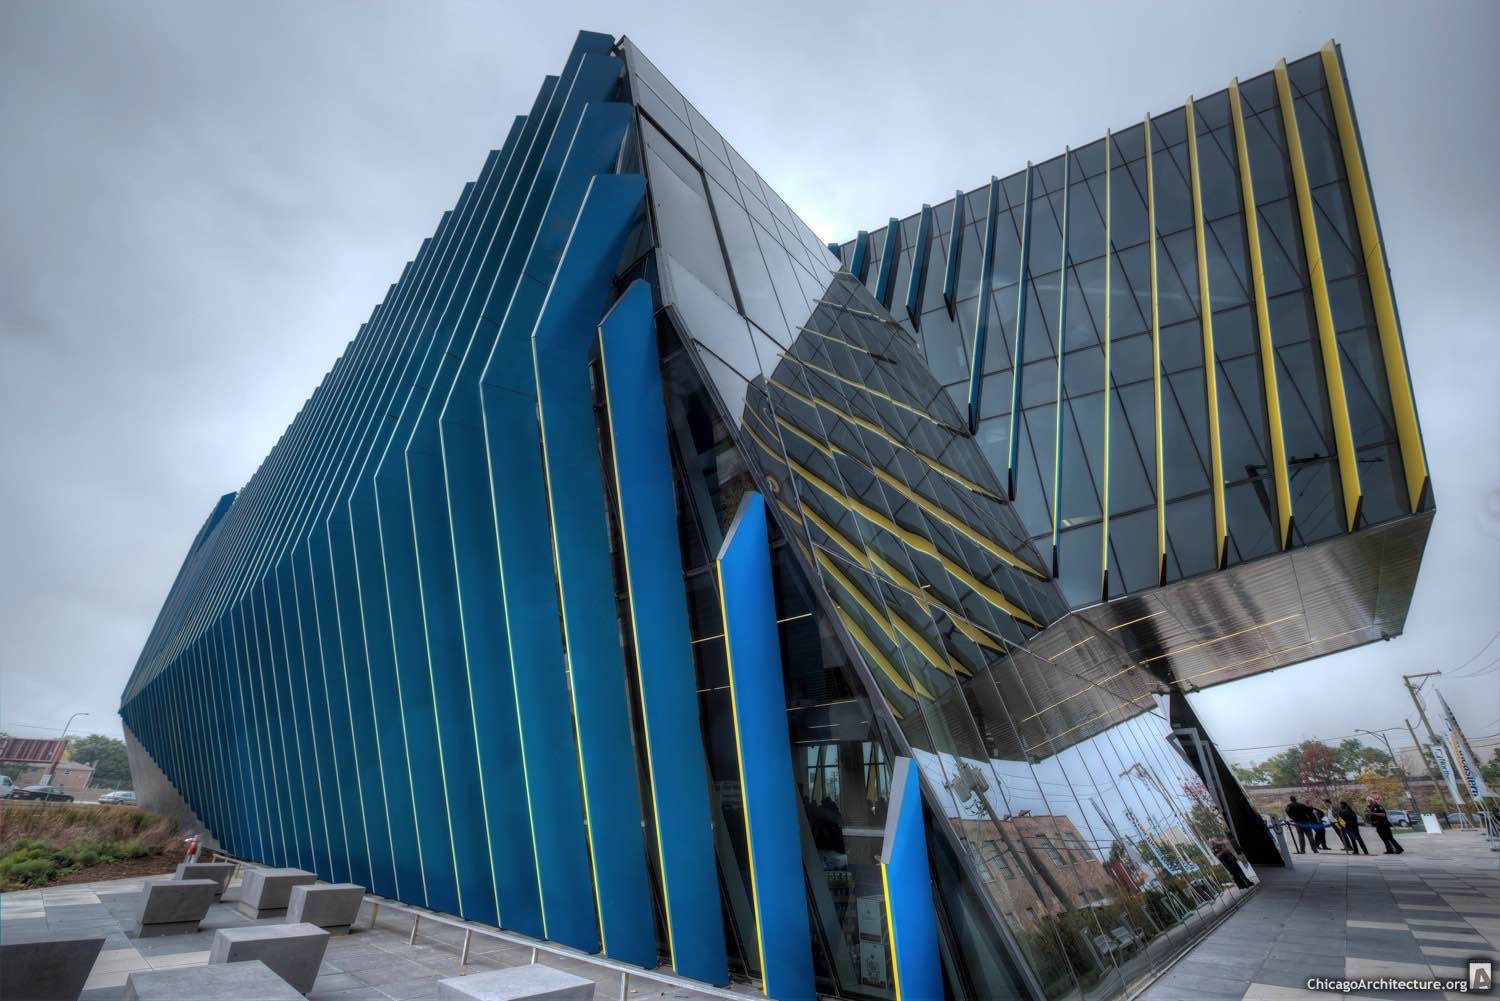 Chicago Architecture neiu's new el centro building wows at opening ceremony :: chicago